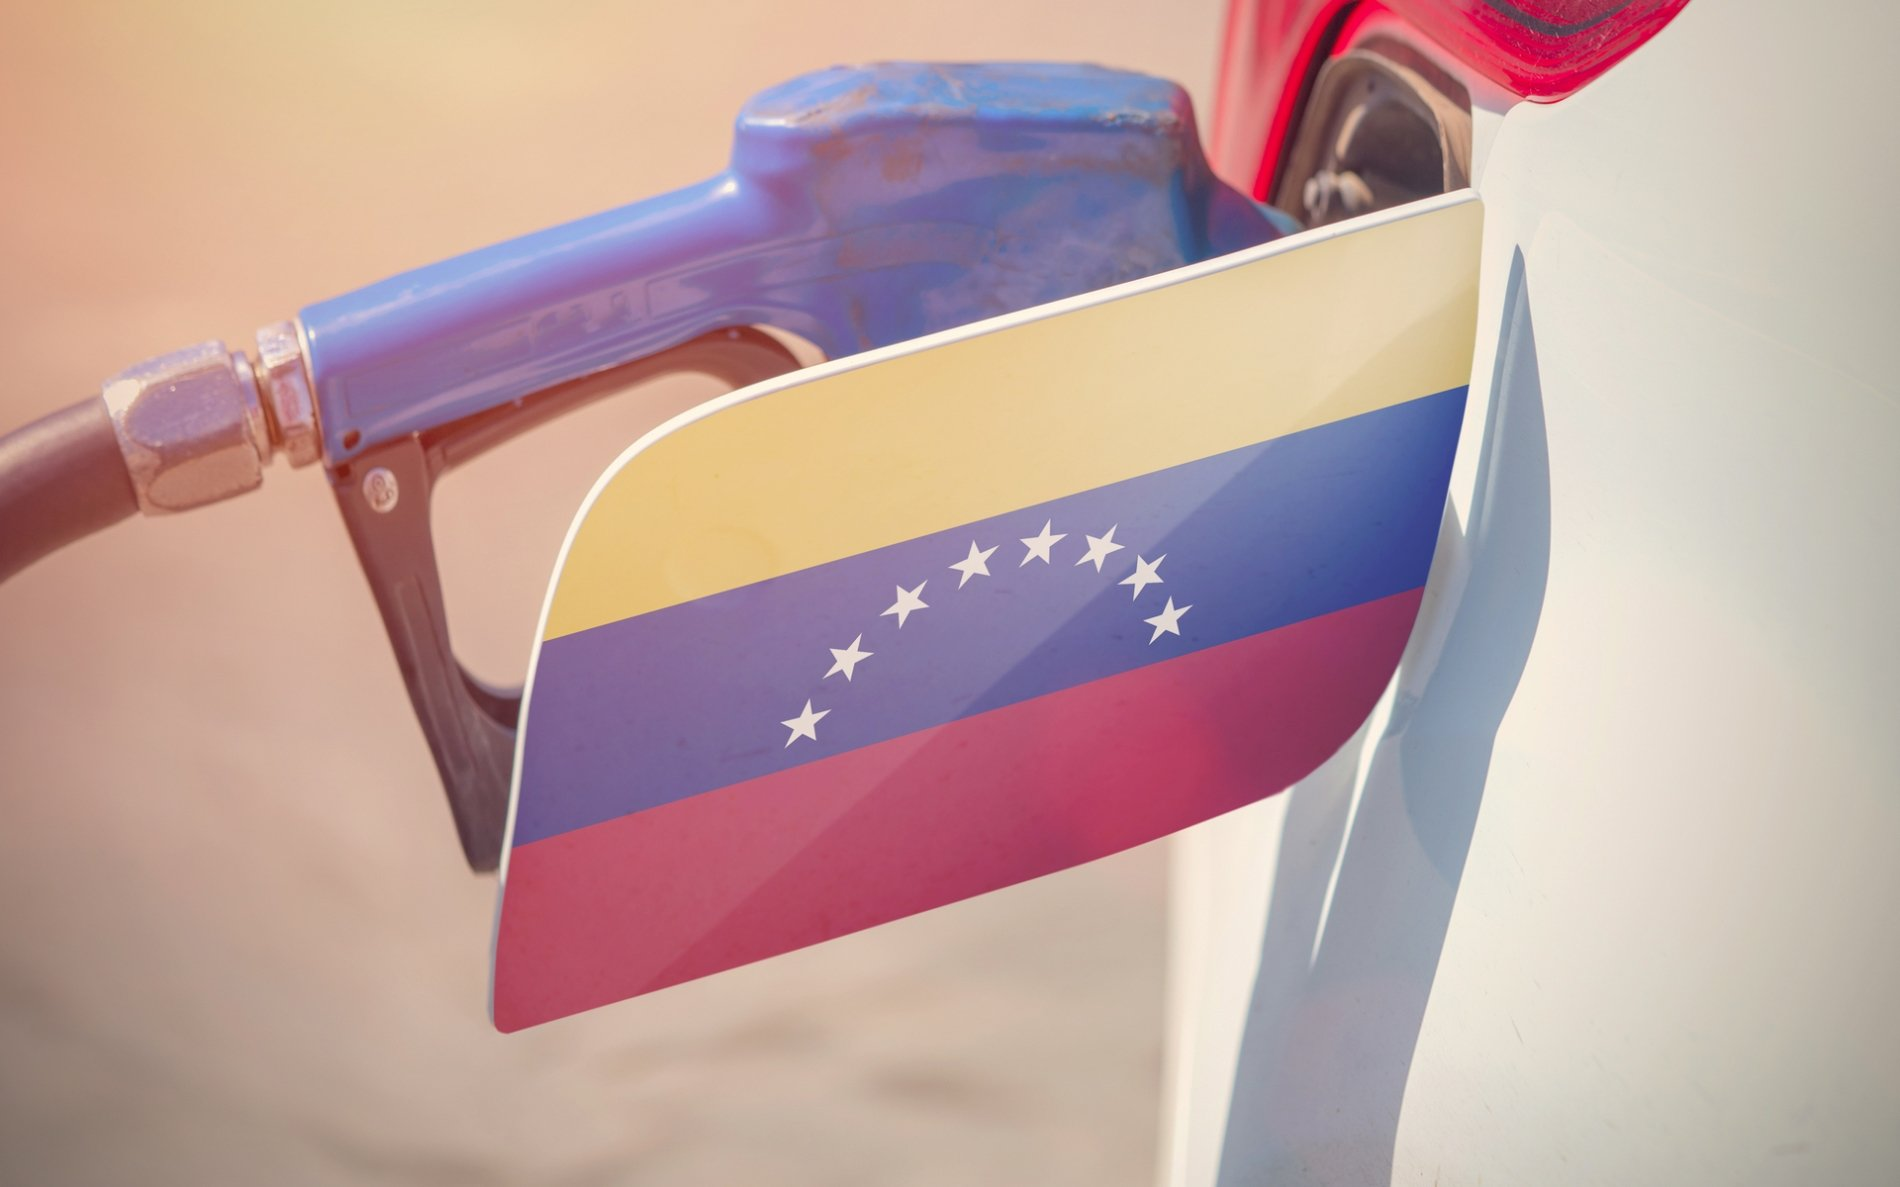 Venezuelan currency devaluation called